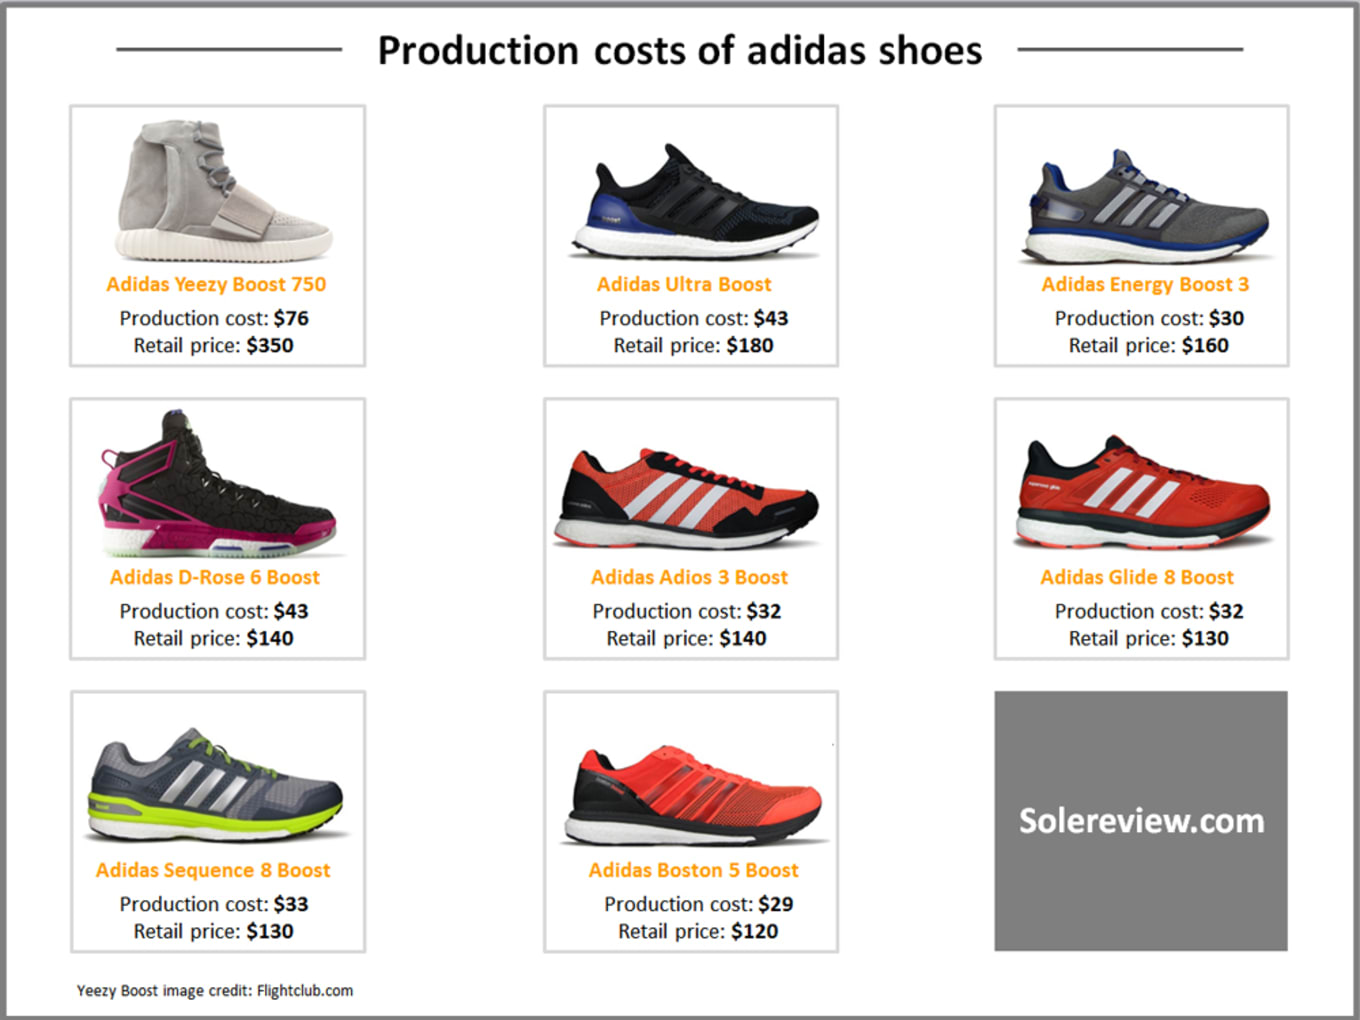 6fa06298149 Actual Production Cost of the adidas Yeezy